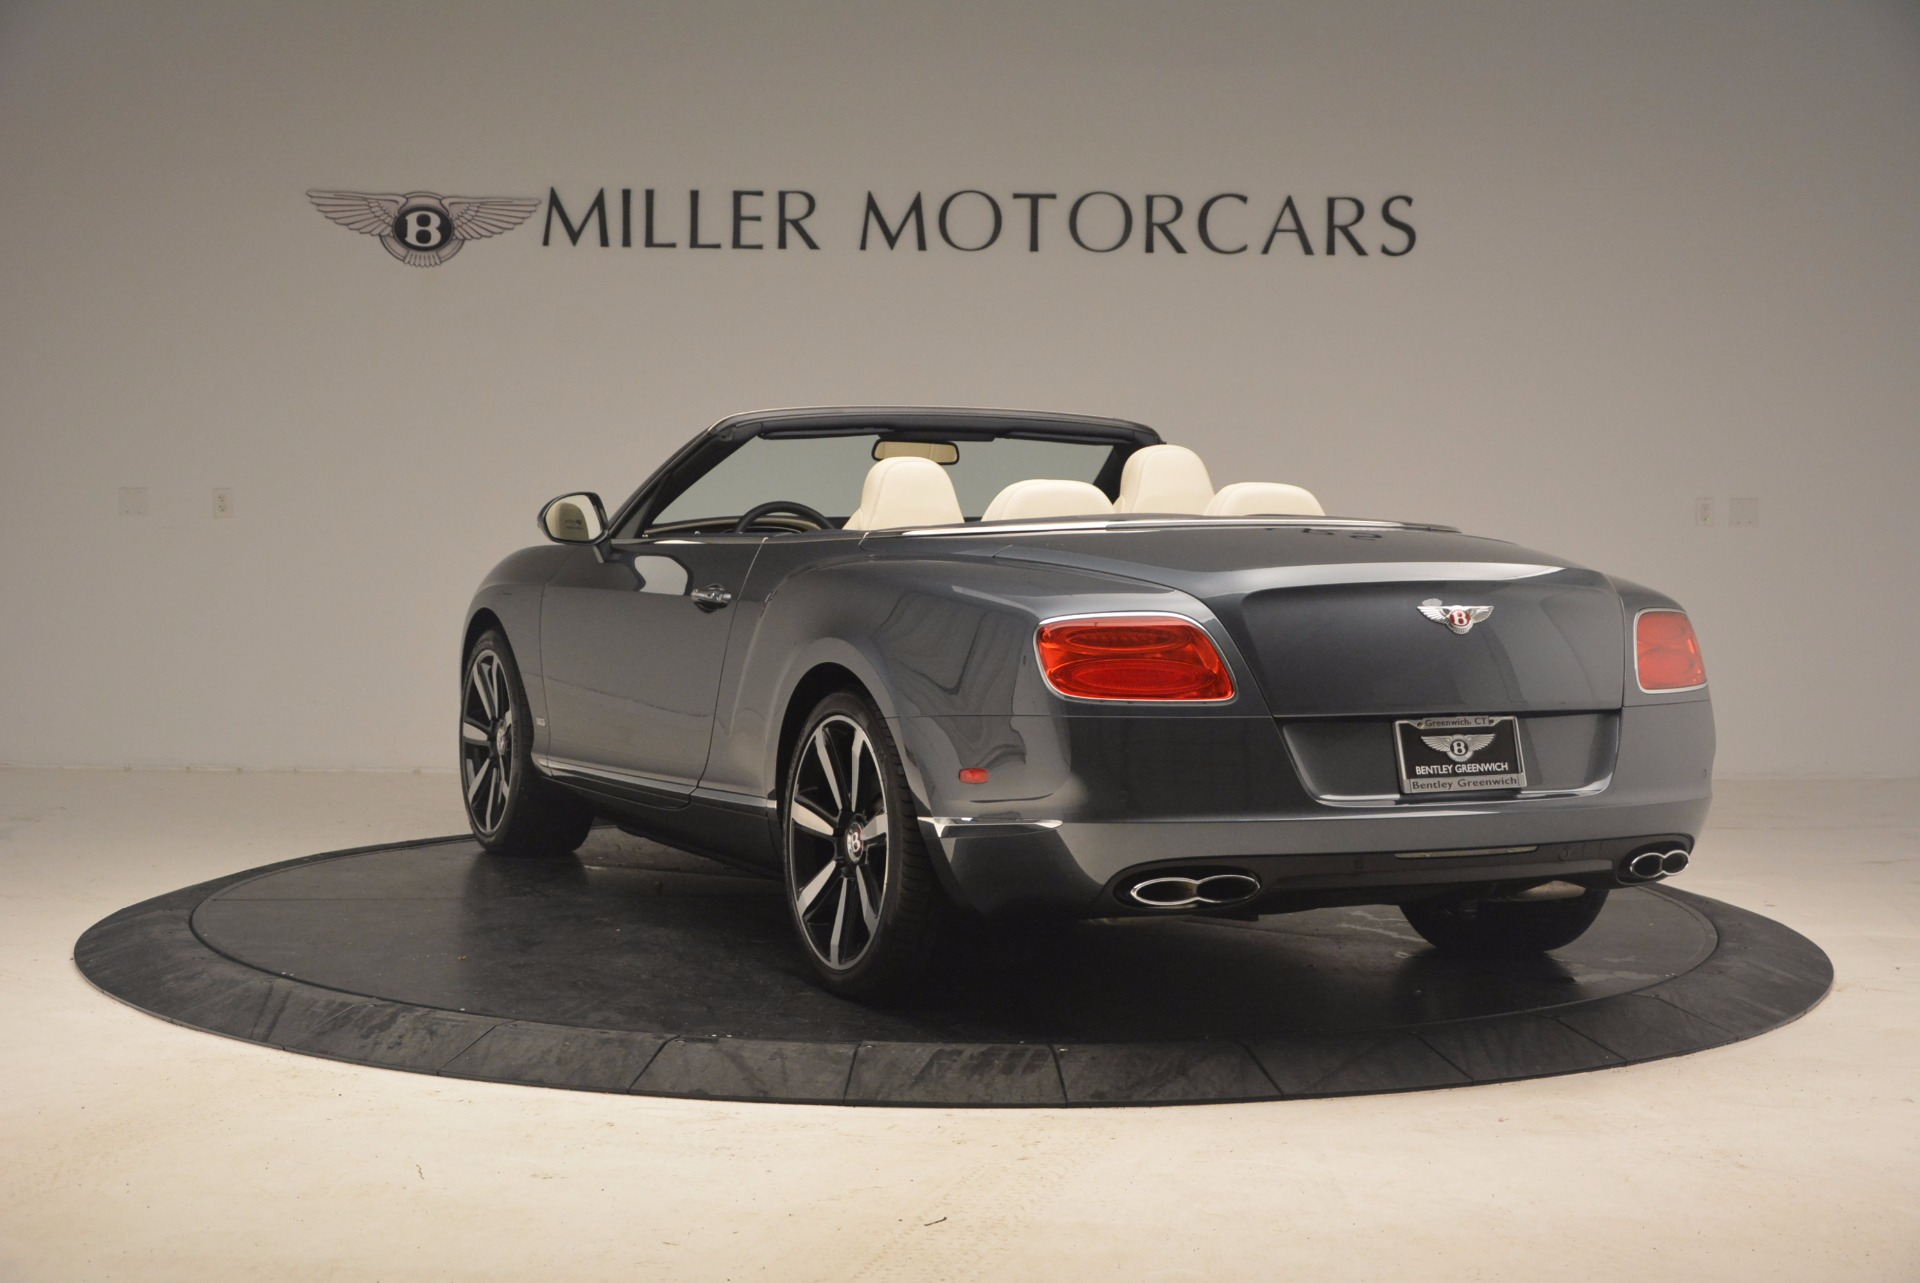 Used 2013 Bentley Continental GT V8 Le Mans Edition, 1 of 48 For Sale In Greenwich, CT. Alfa Romeo of Greenwich, 7226 1288_p5